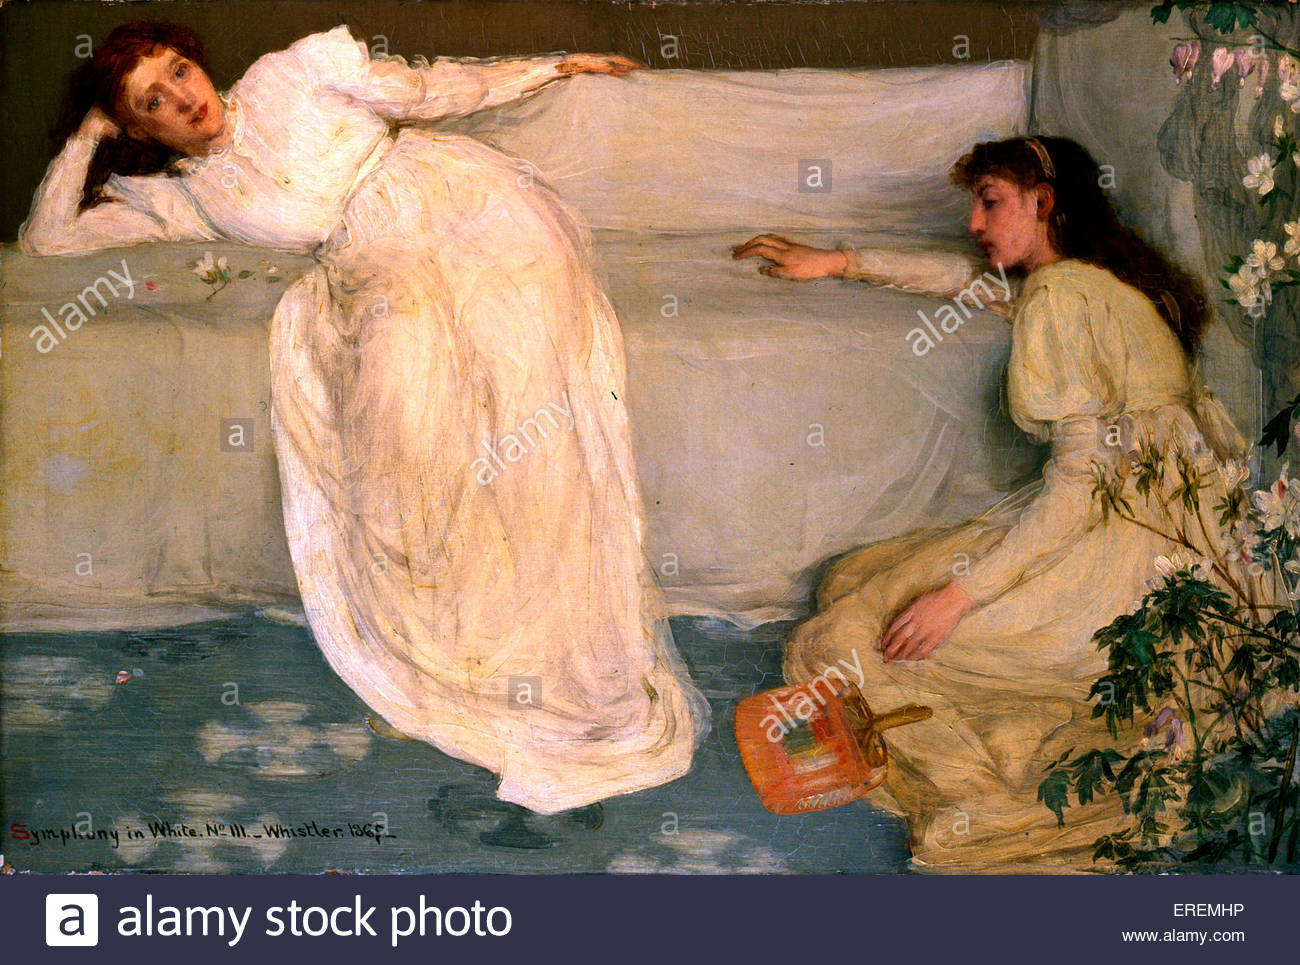 Symphony in White, No. III  by James Abbott McNeill Whistler,1865- 67. American- born British painter, 11 July 1834 - Stock Image